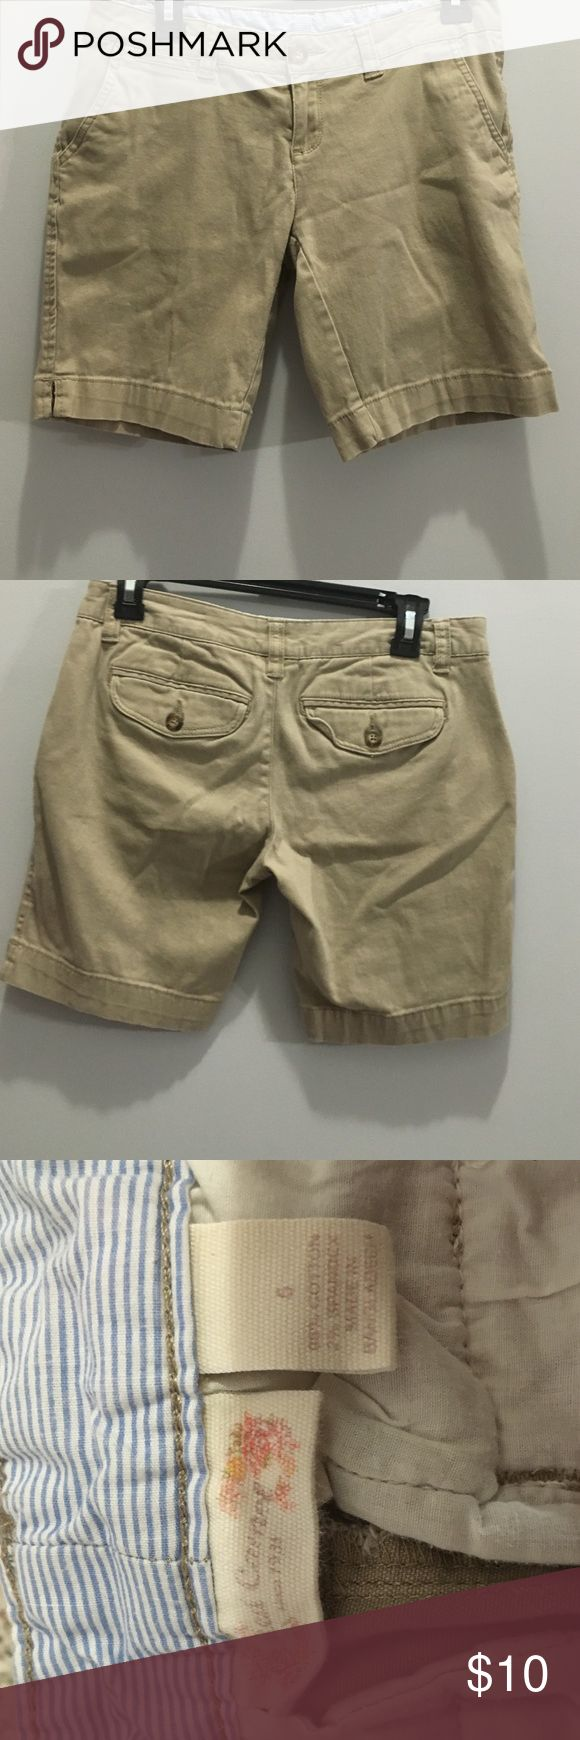 Bermuda tan shorts! Tan shorts. Worn maybe once or twice. Perfect condition. Red Camel Shorts Bermudas